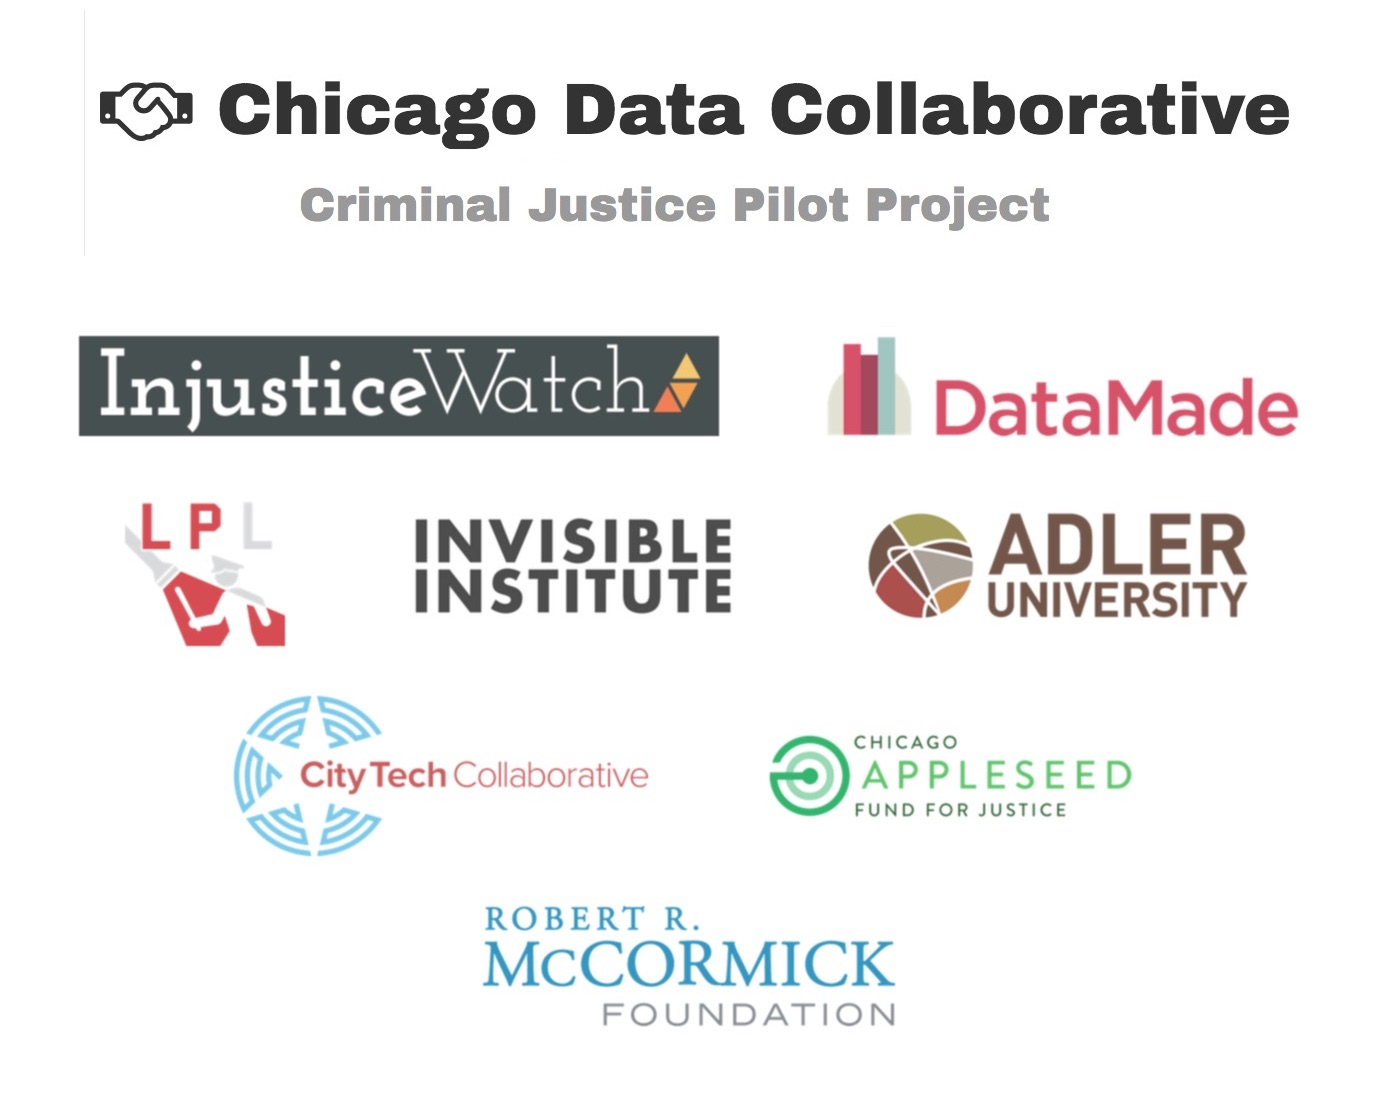 Introducing the Chicago Data Collaborative